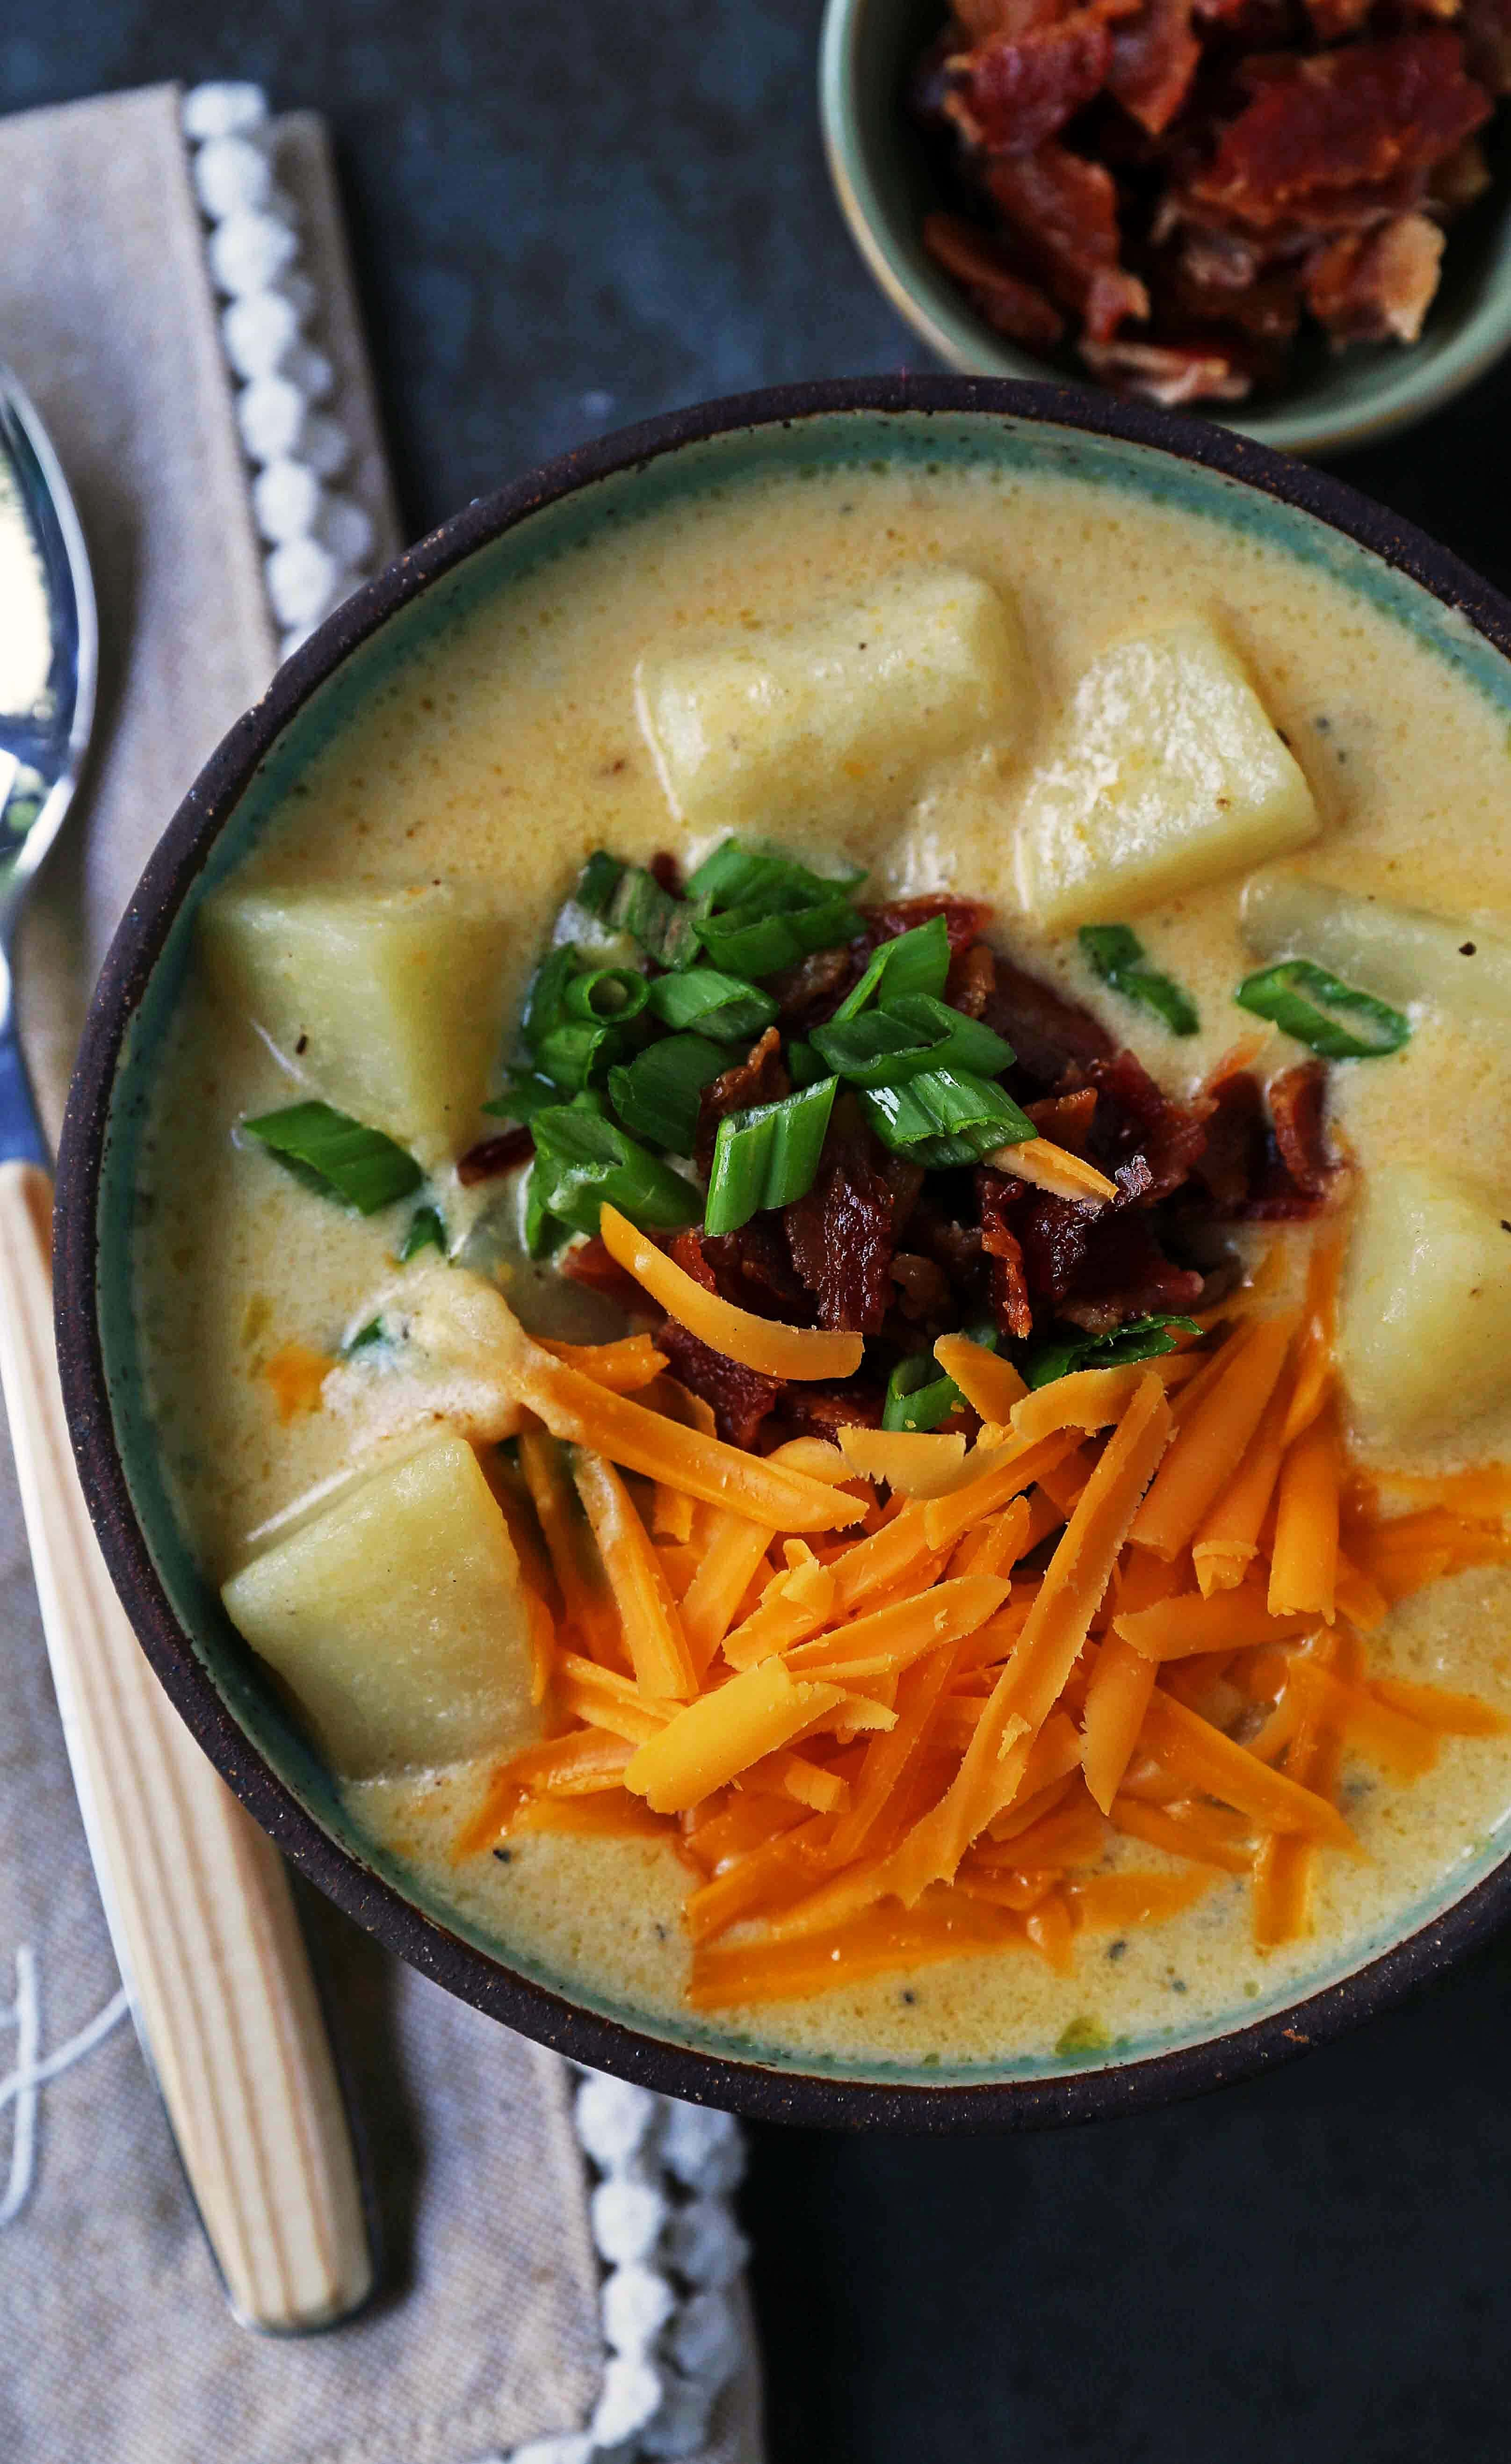 Loaded Baked Potato Soup. Creamy Cheesy Potato Soup topped with crispy bacon, green onions, sharp cheddar cheese, and sour cream. The perfect baked potato soup recipe. www.modernhoney.com #soup #soups #bakedpotatosoup #potatosoup #creamsoup www.modernhoney.com